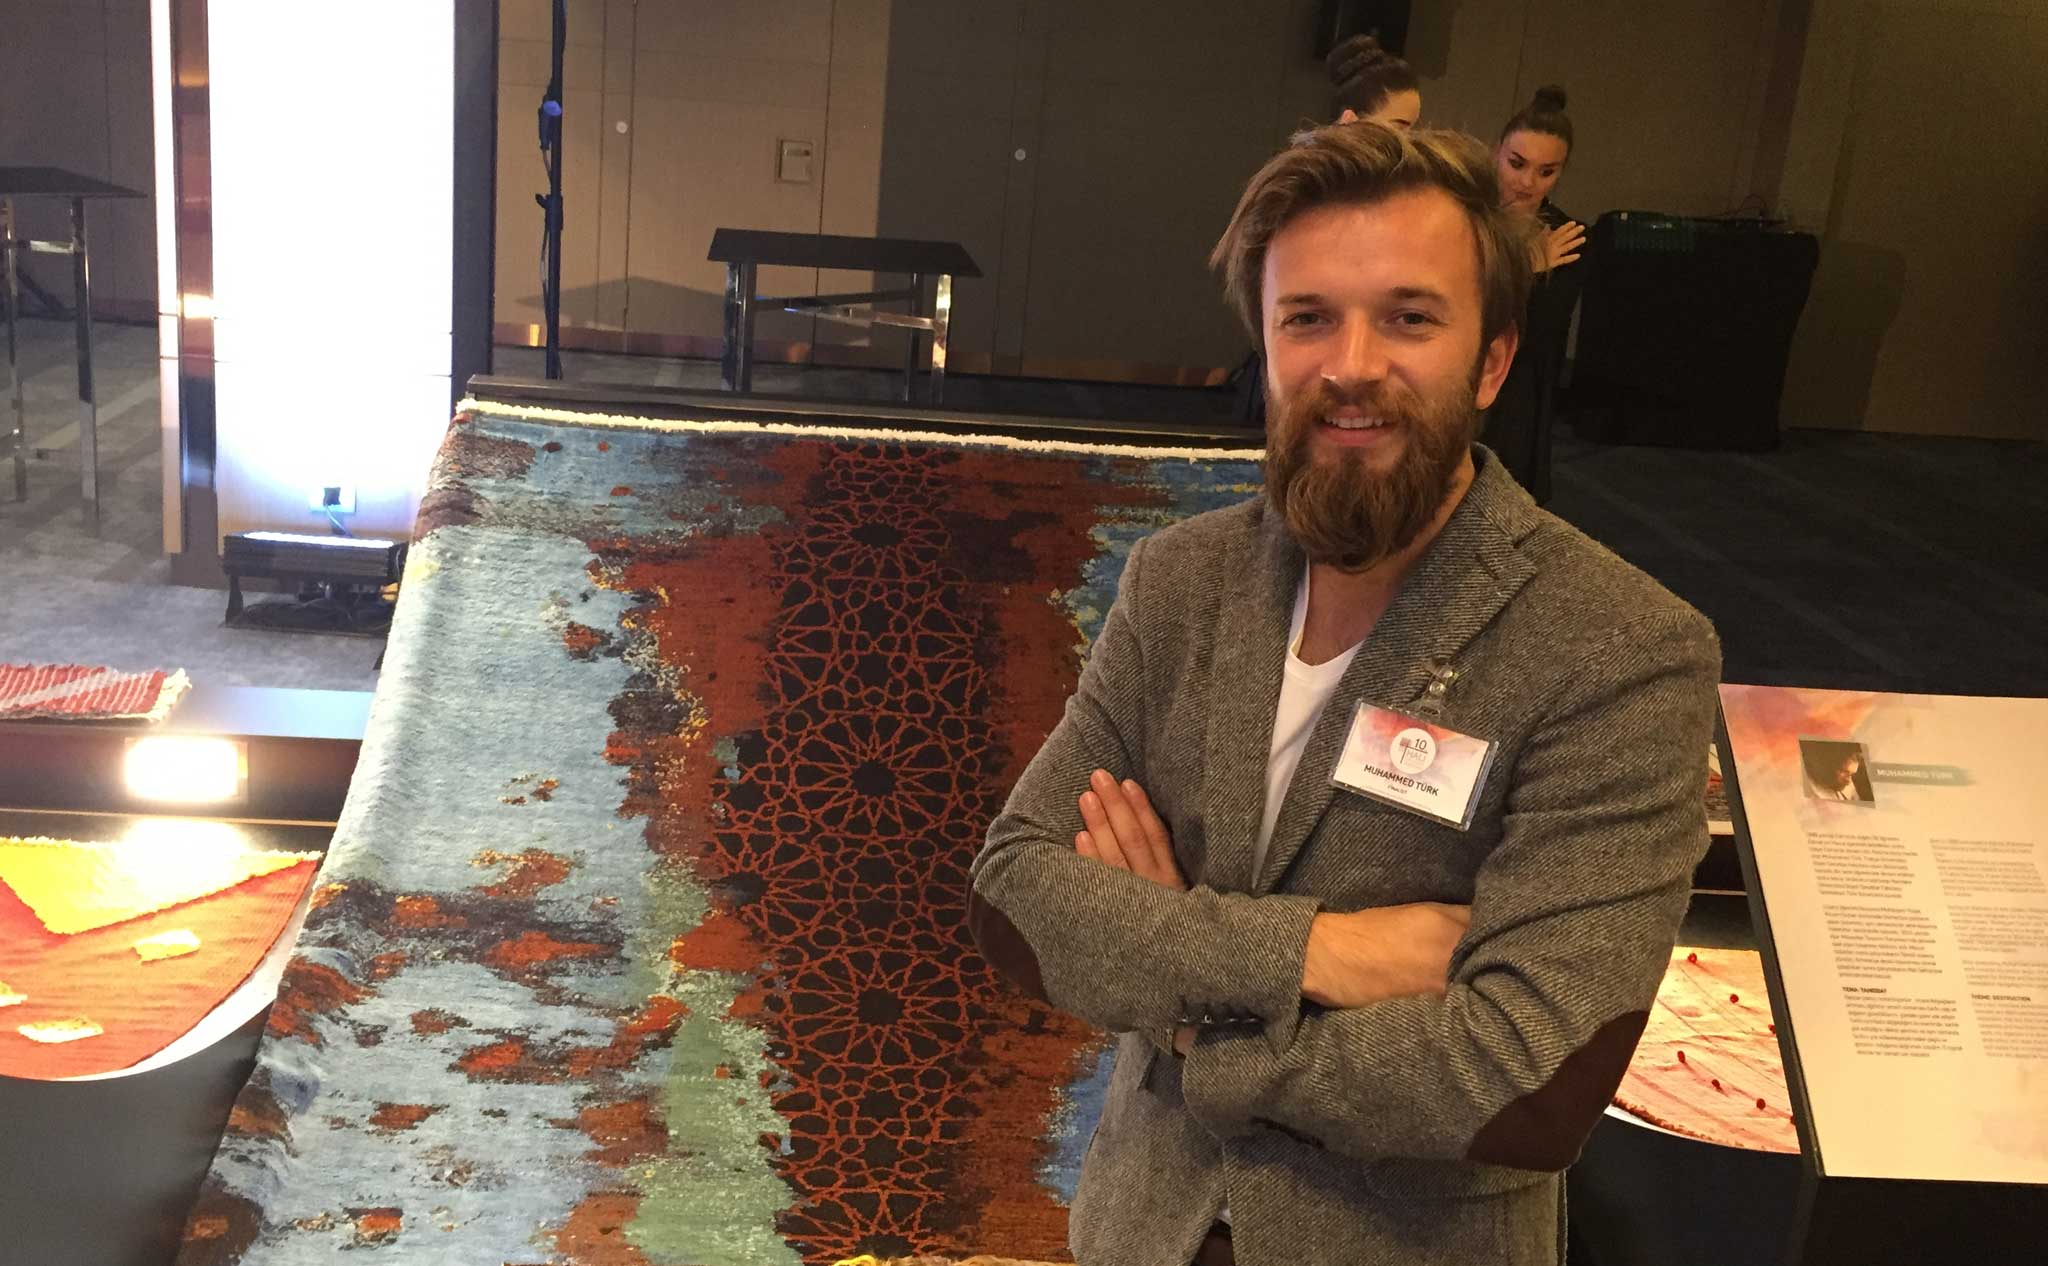 Muhammed Türk is shown with his carpet 'Destruction' which won the tenth (10th) annual Turkish Carpet Design Awards presented by IHIB. | Image courtesy of The Ruggist.